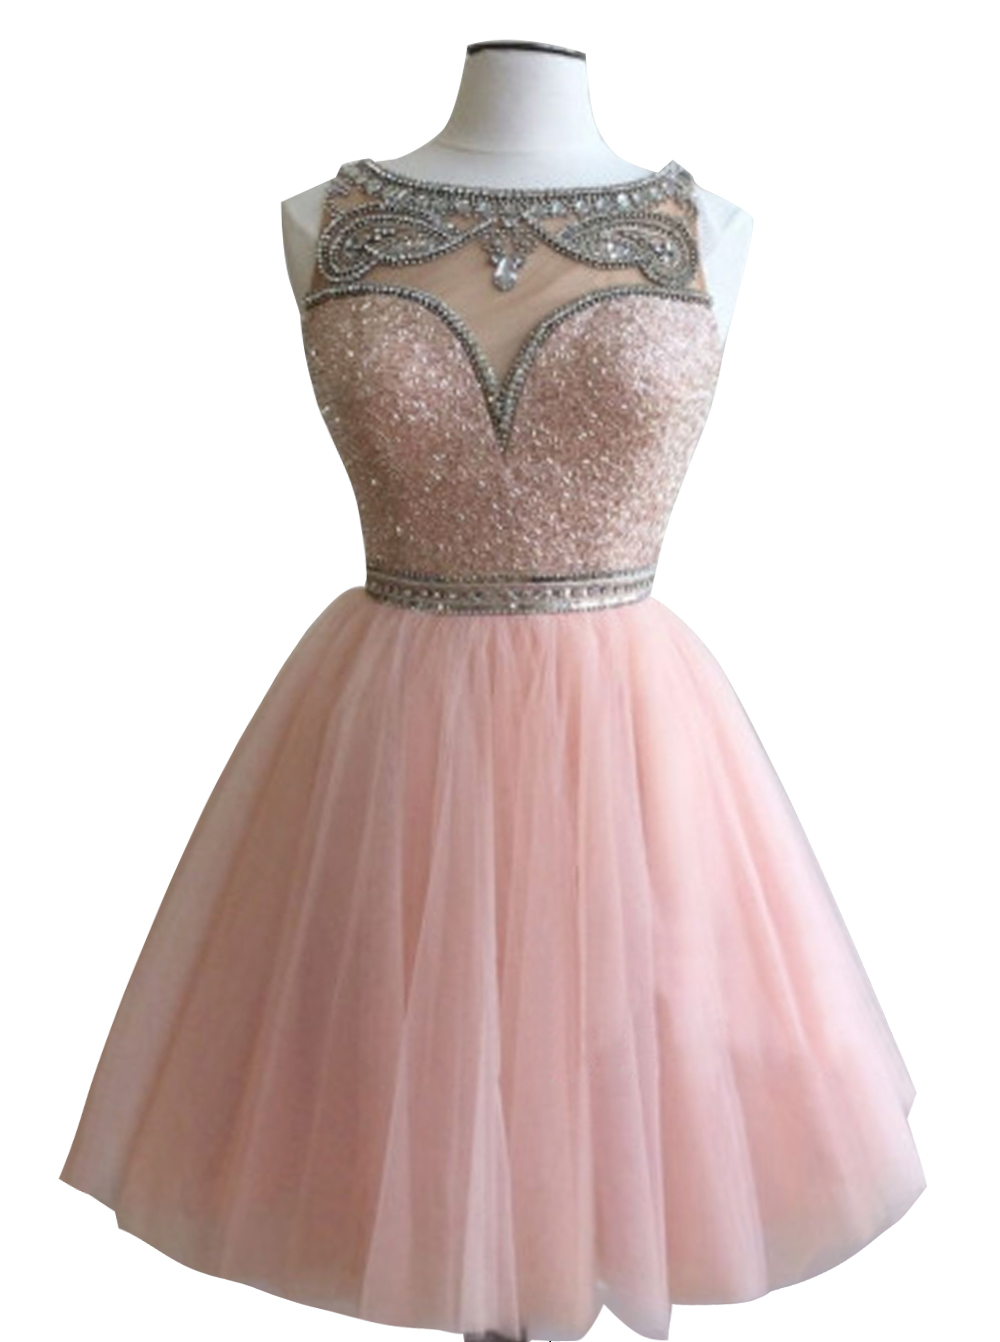 Sweet Bateau Sleeveless Short Pink Homecoming Dress with Beading Sequins фото